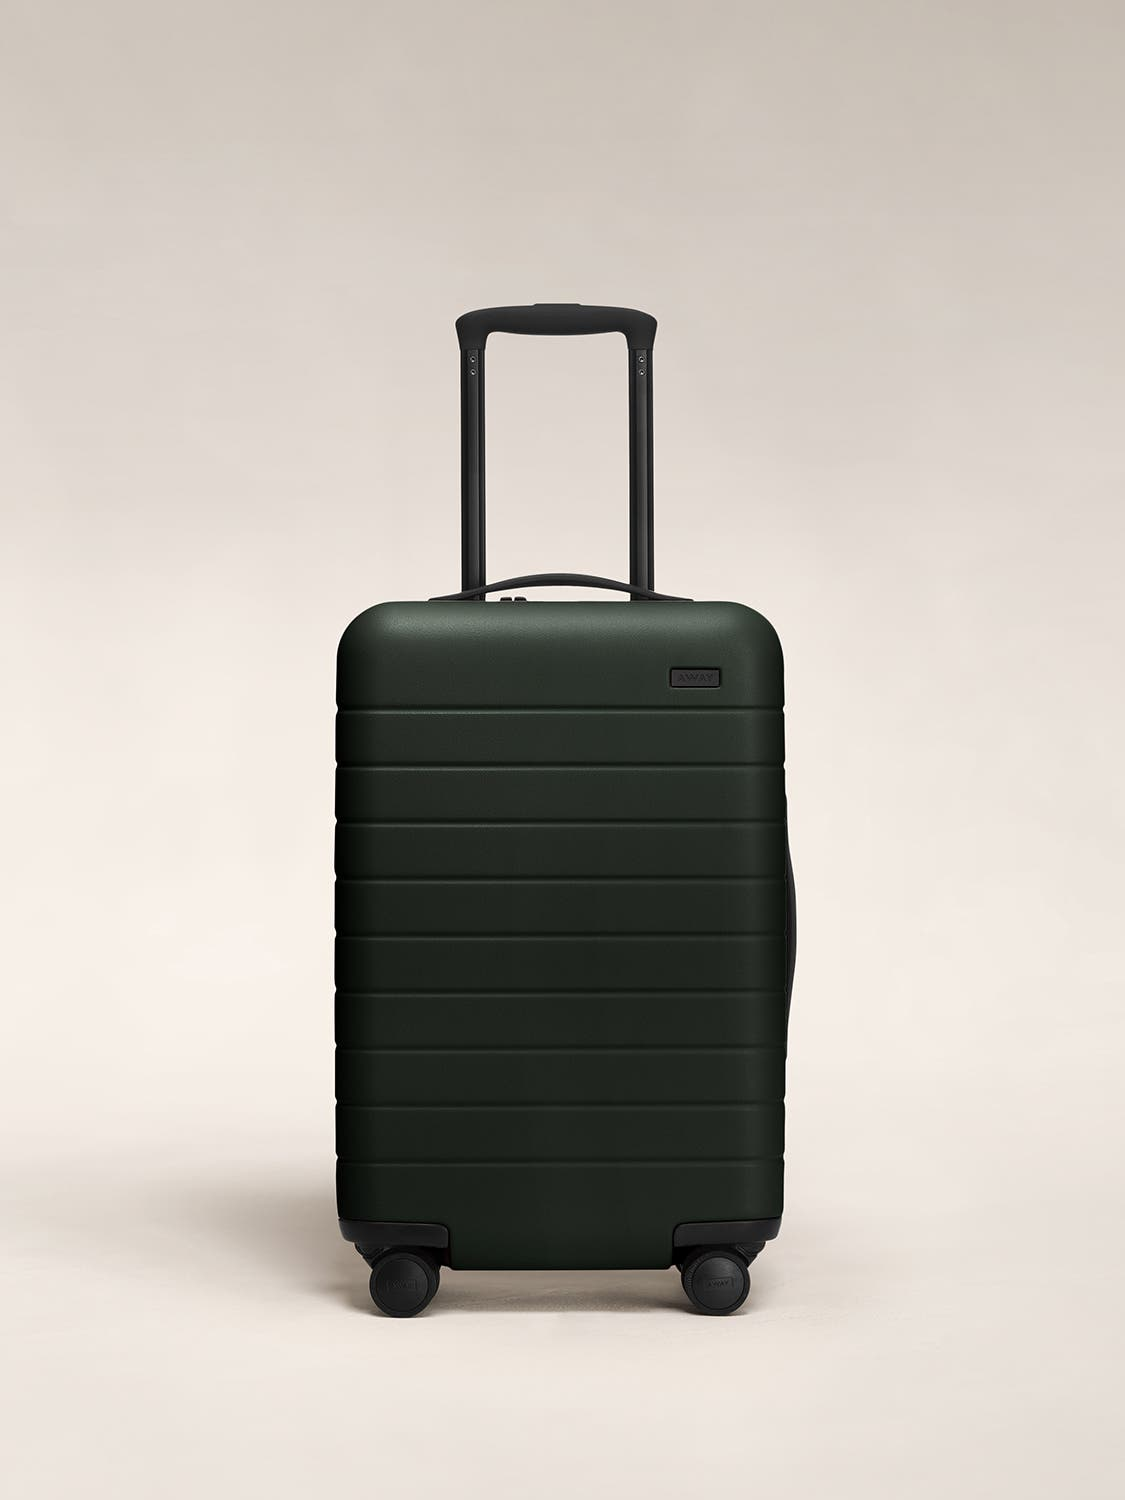 Front view of a green carry-on suitcase with a hard shell, nylon front pocket, and telescopic handle pulled out.